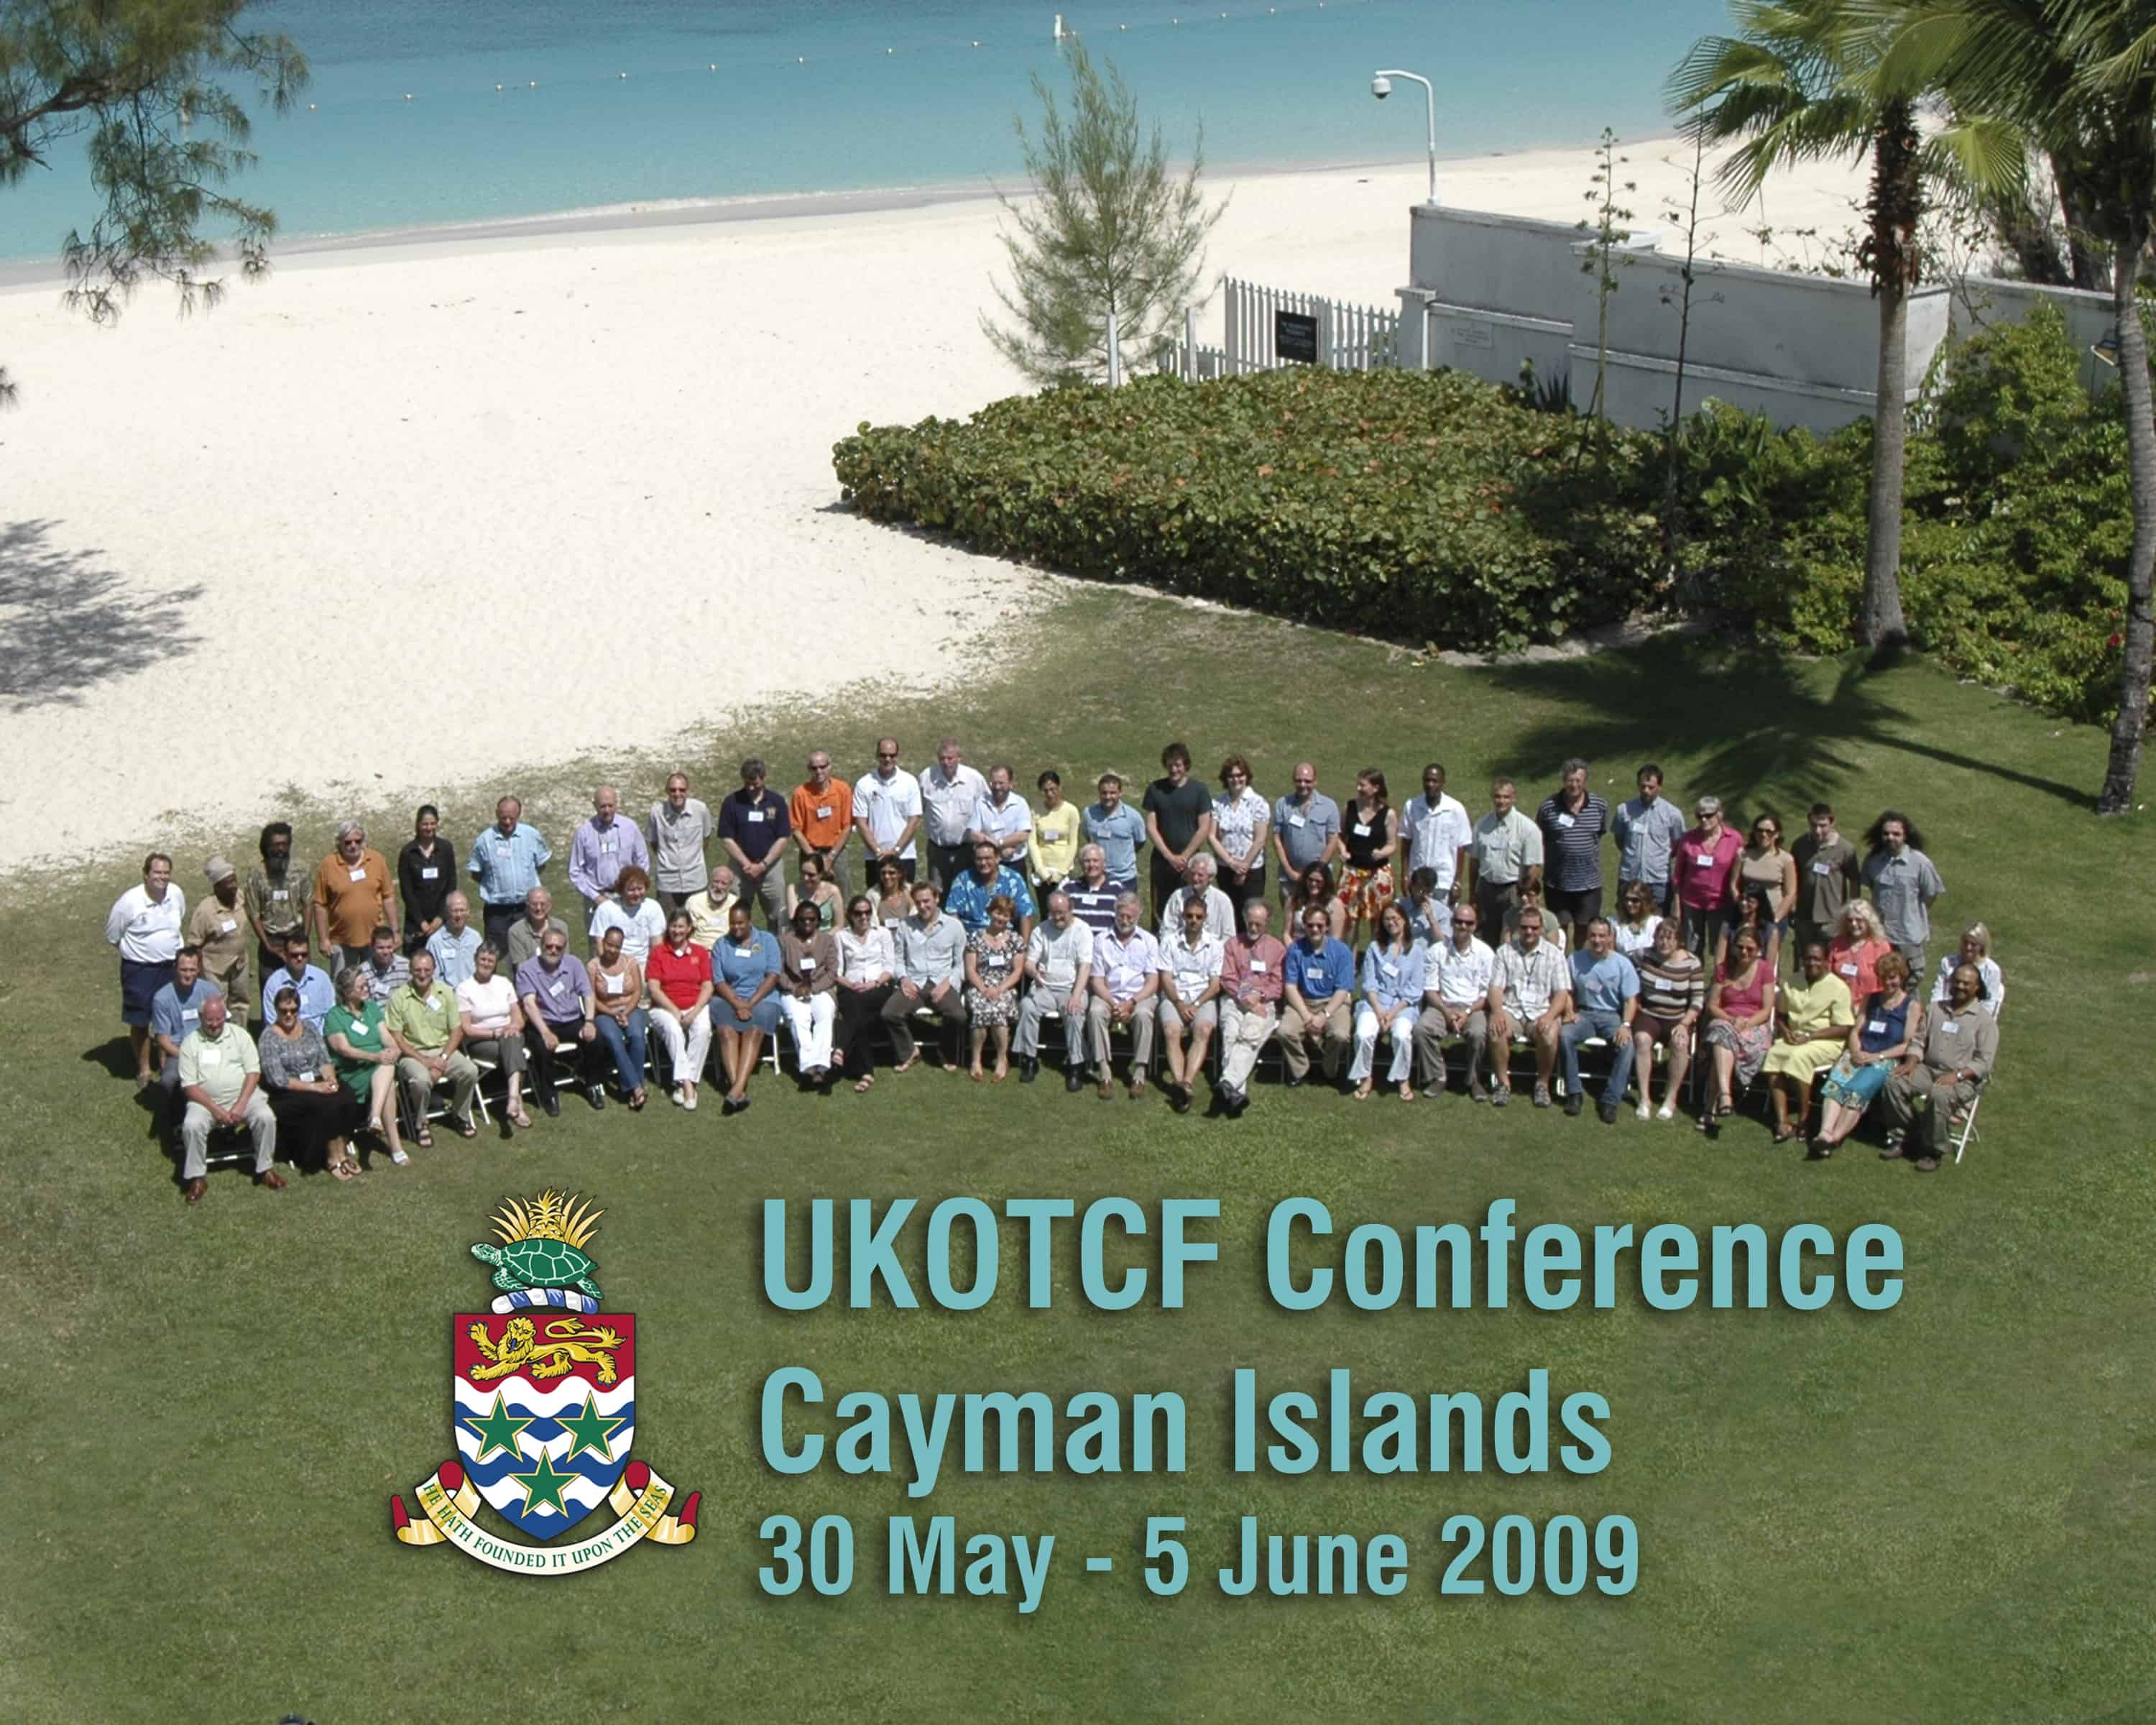 Conference participants. UKOTCF/Cayman Islands Government